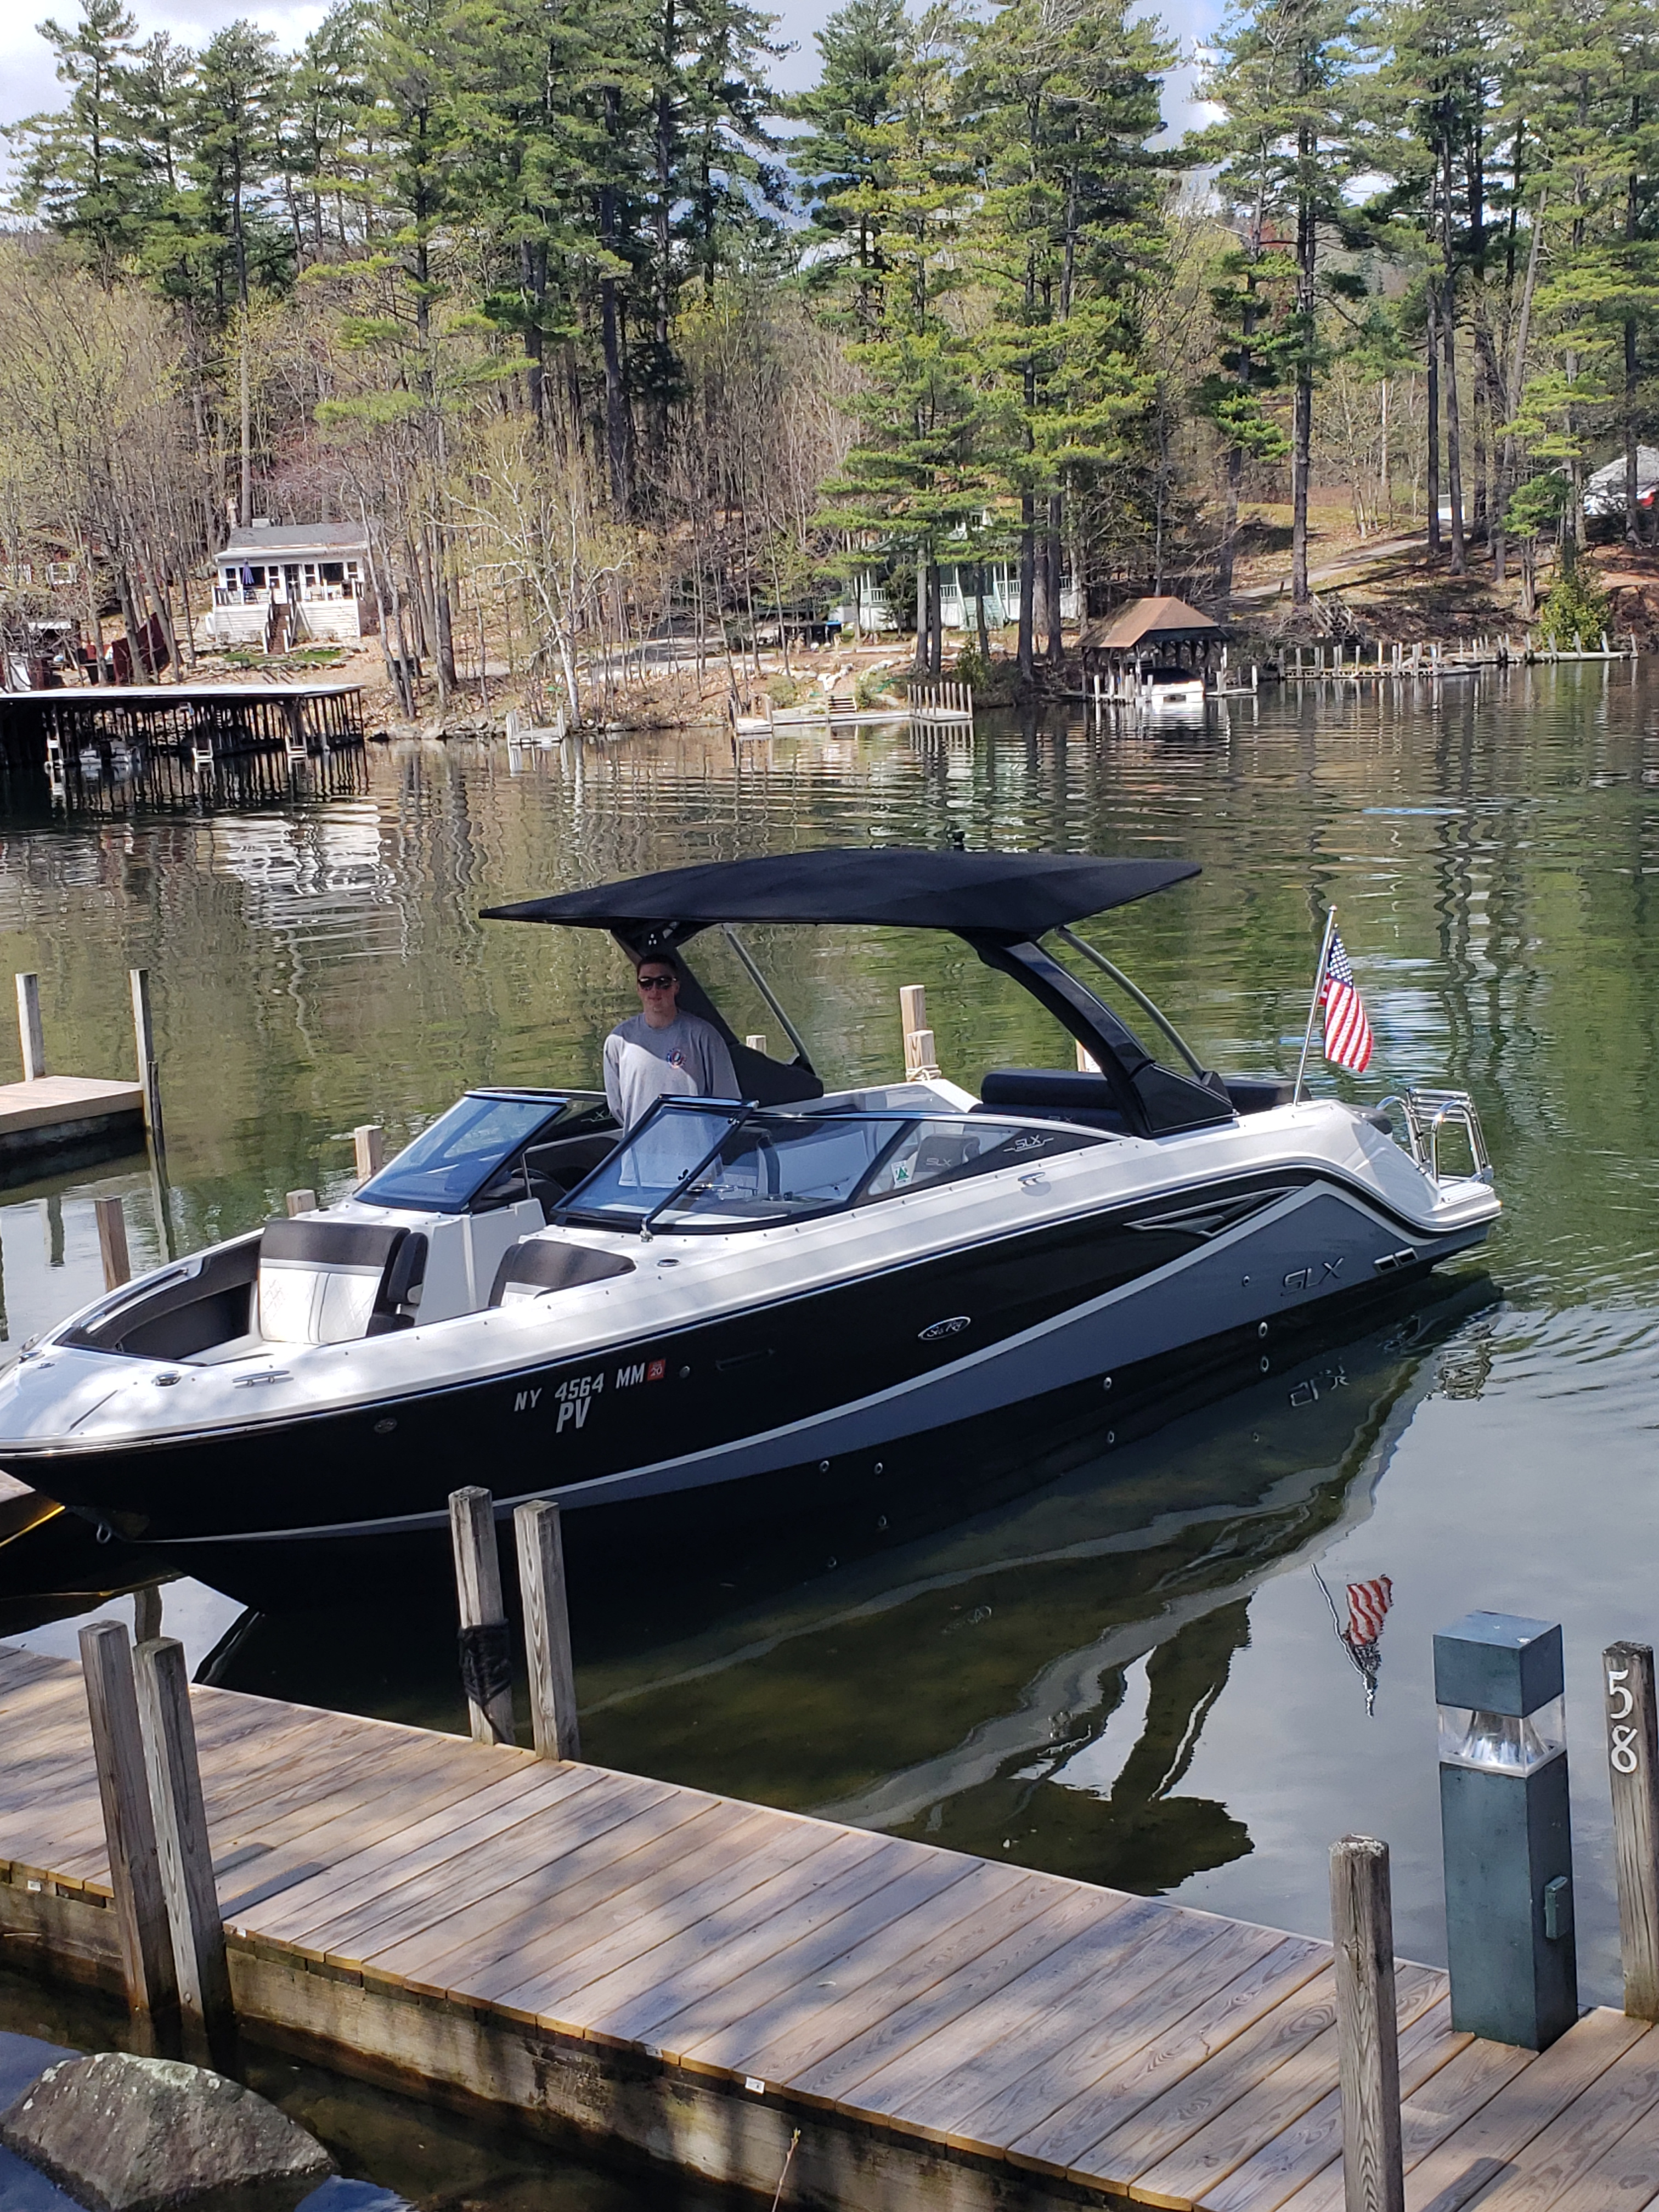 adk boat tours 01